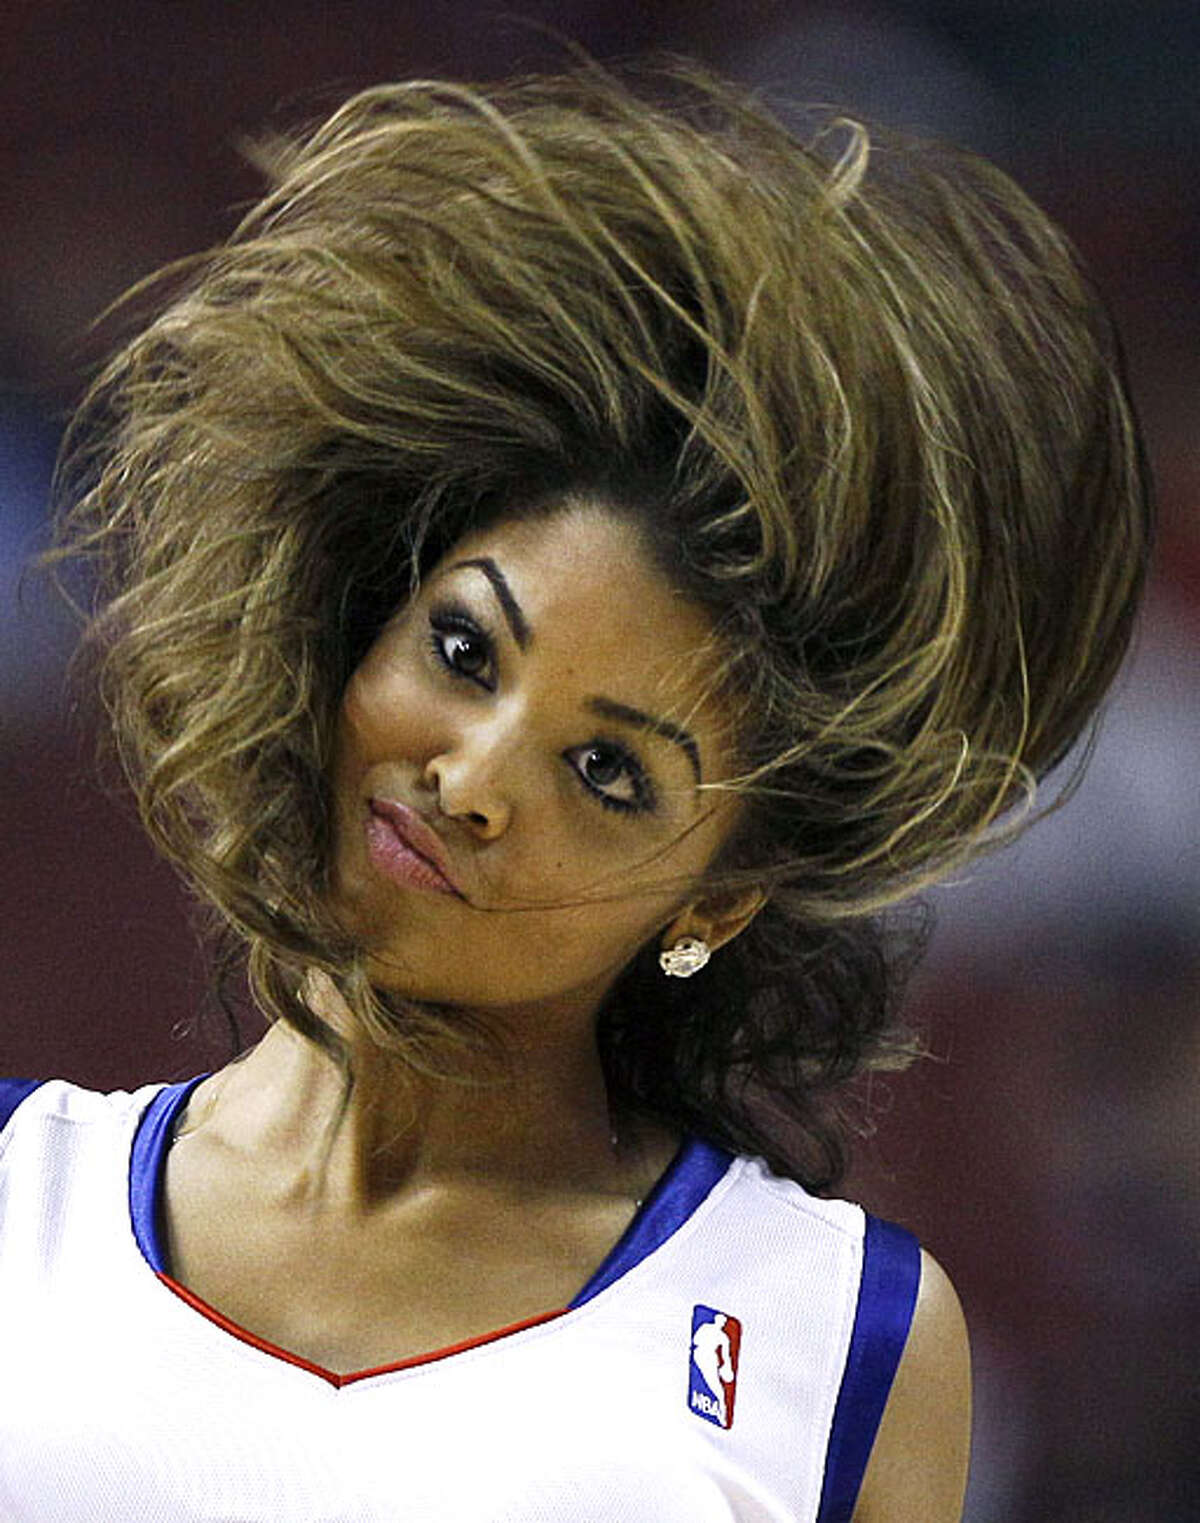 A Philadelphia 76ers' cheerleader performs in the second half of an NBA basketball game against the Portland Trail Blazers, Tuesday, Nov. 30, 2010, in Philadelphia. Philadelphia won 88-79.